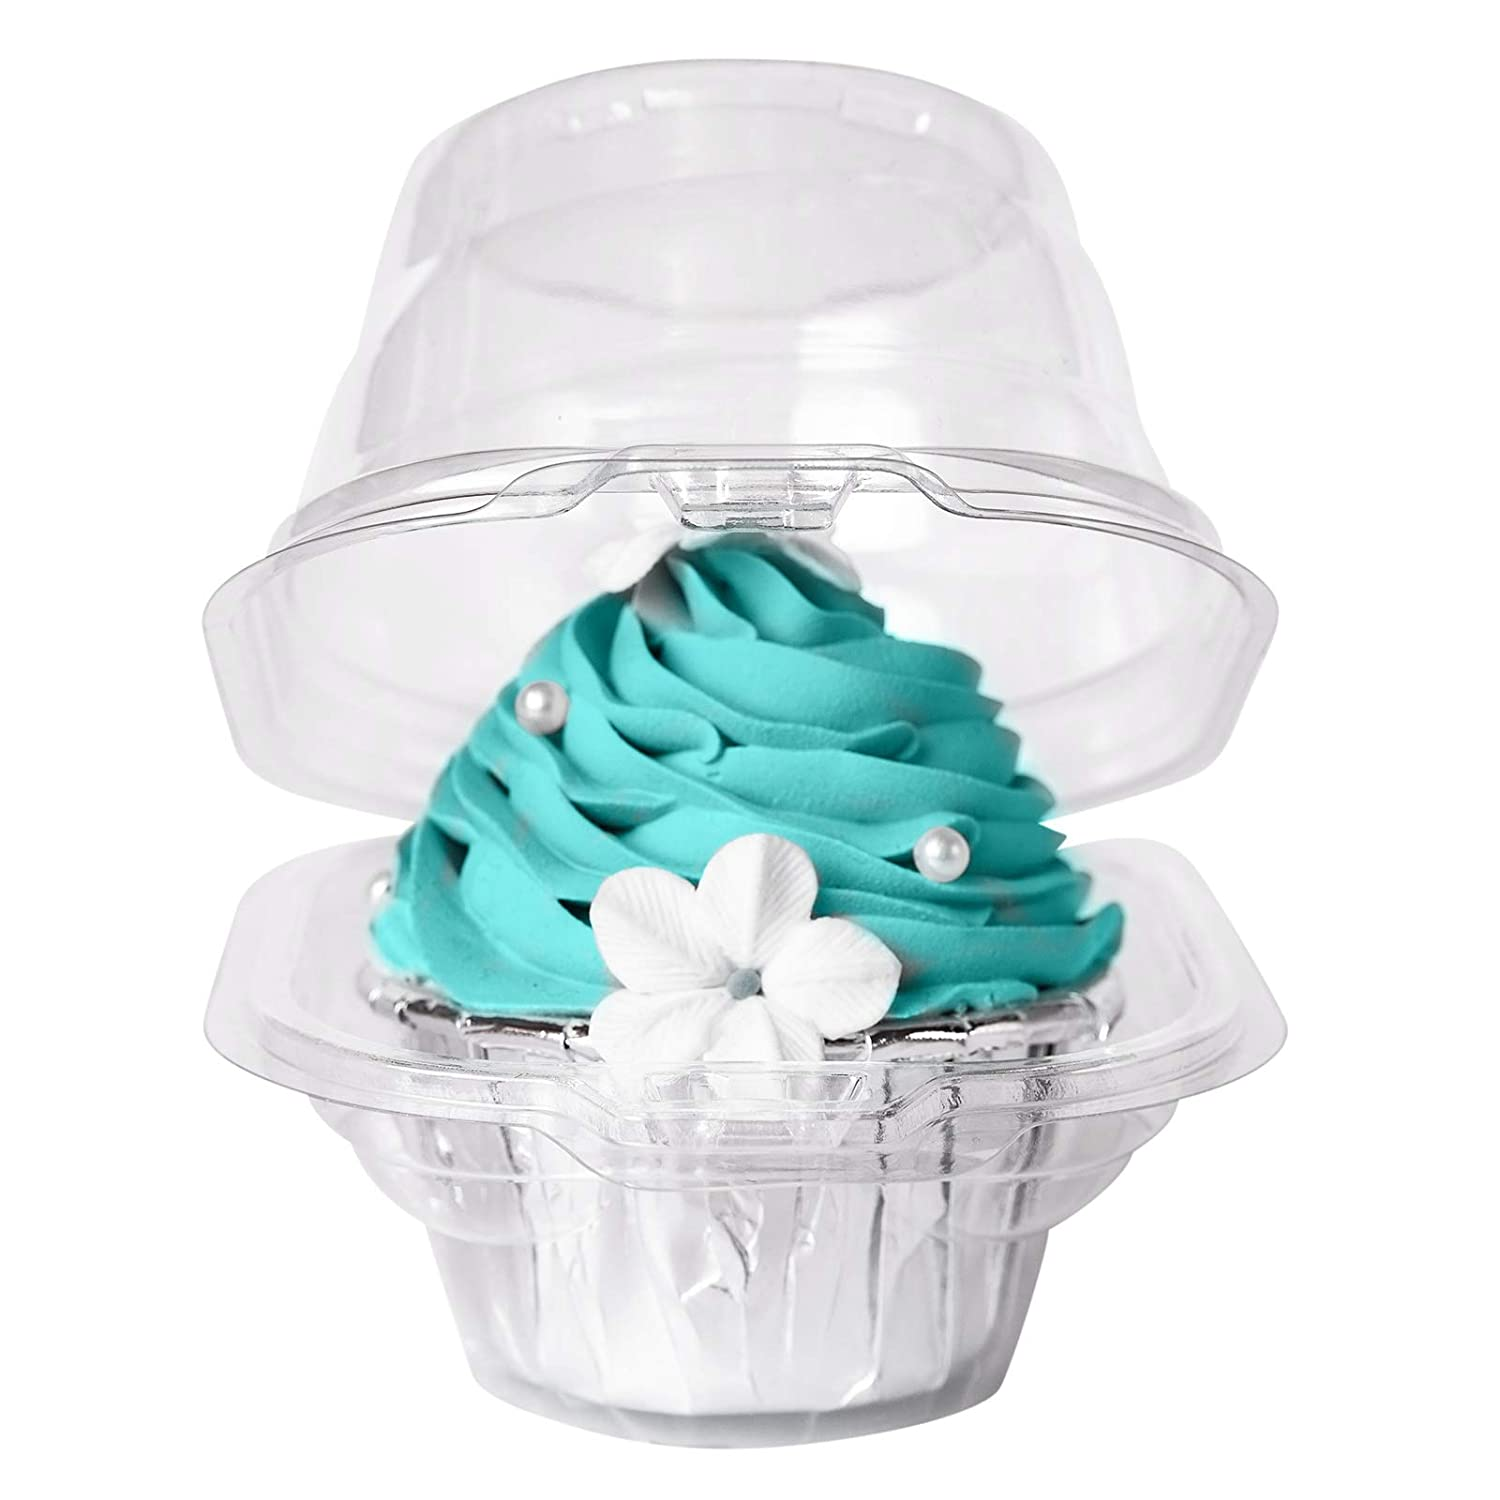 [50PCS]Single Clear Individual Cupcake Box,Small Stackable Take Out Container 1 Compartment with Lid Disposable Plastic Packaging,BPA-Free Dome Carrier Holder for Wedding Favor (Pack of 50)